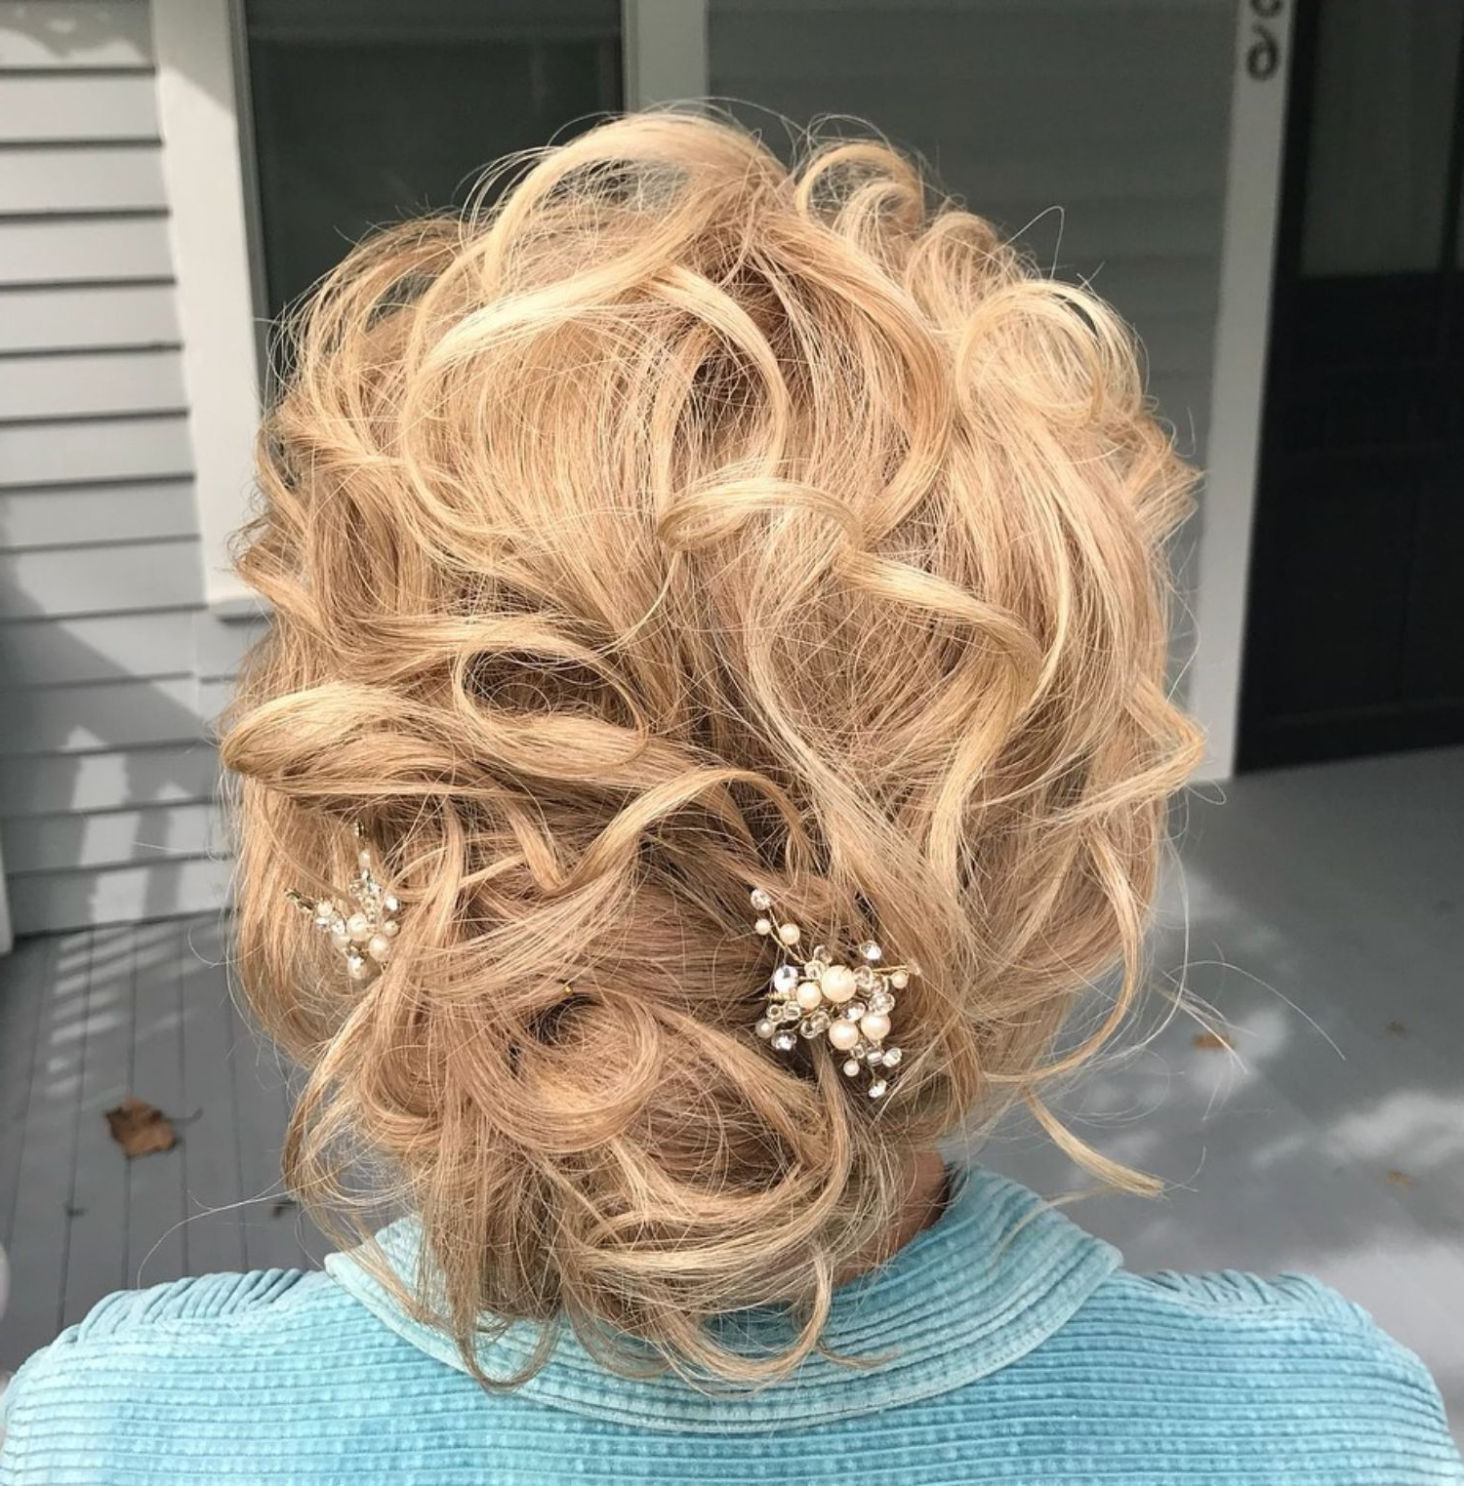 Tasha's Inside Widely Used Voluminous Curly Updo Hairstyles With Bangs (View 17 of 20)